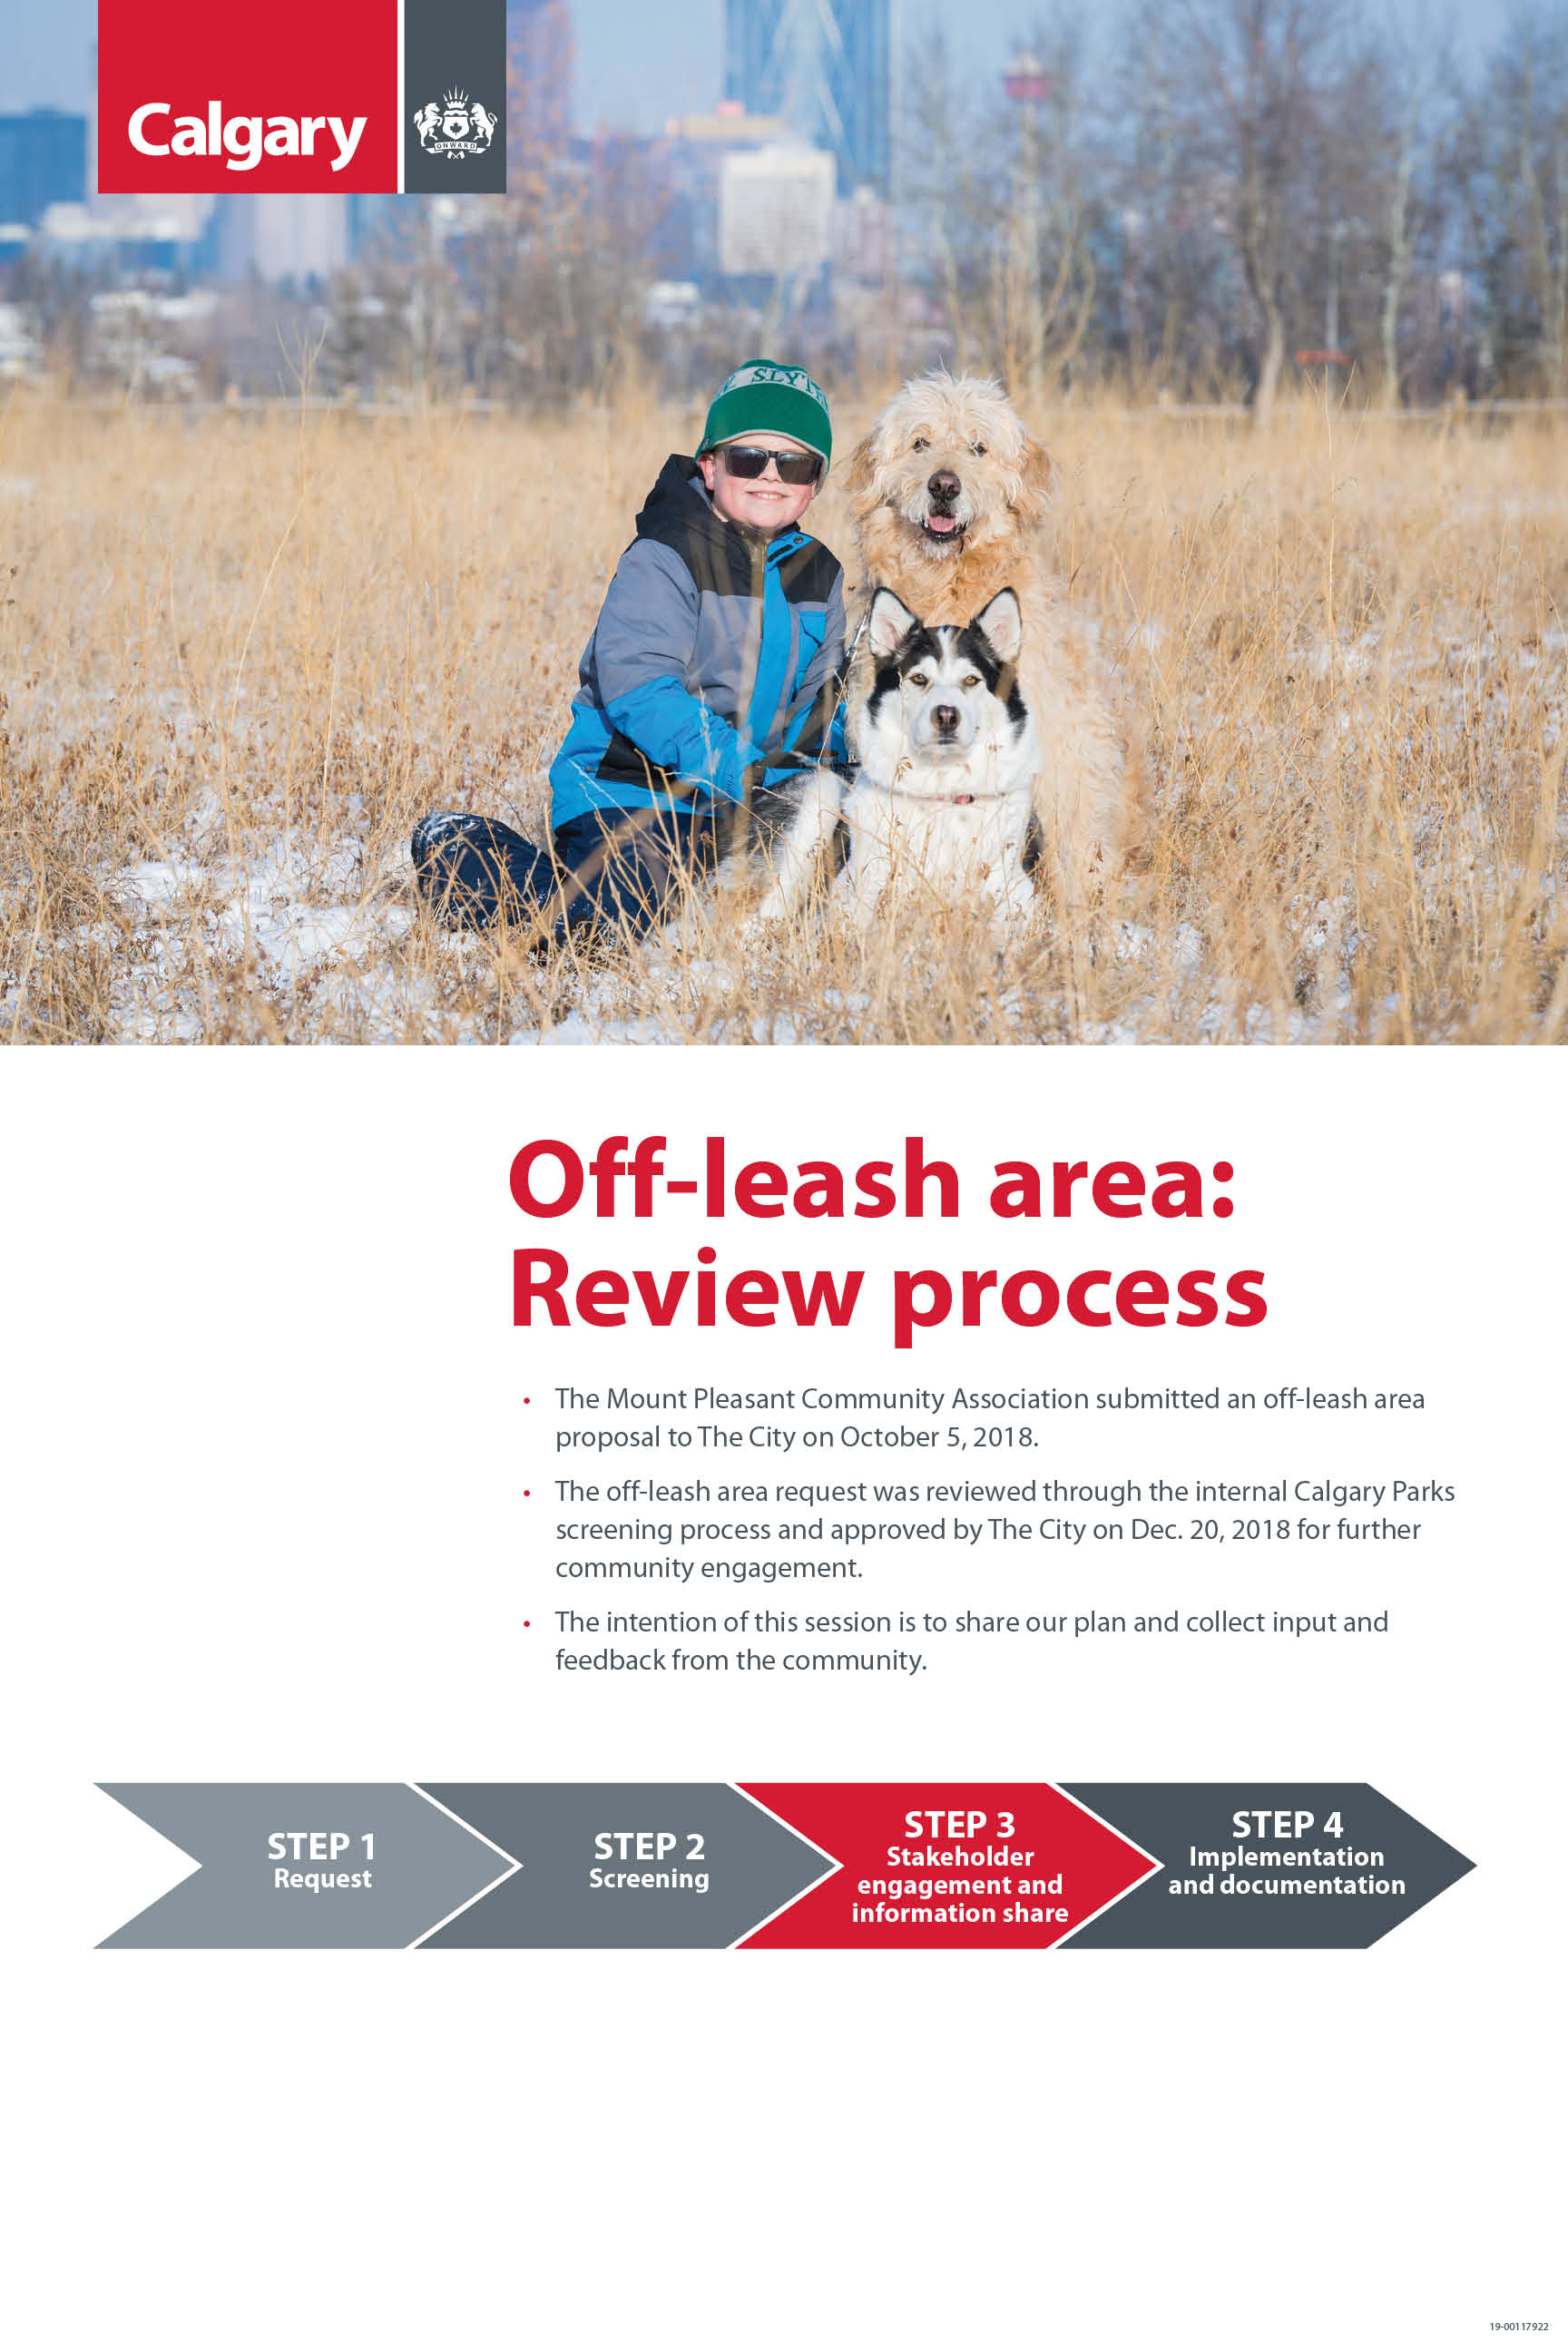 Off leash area process